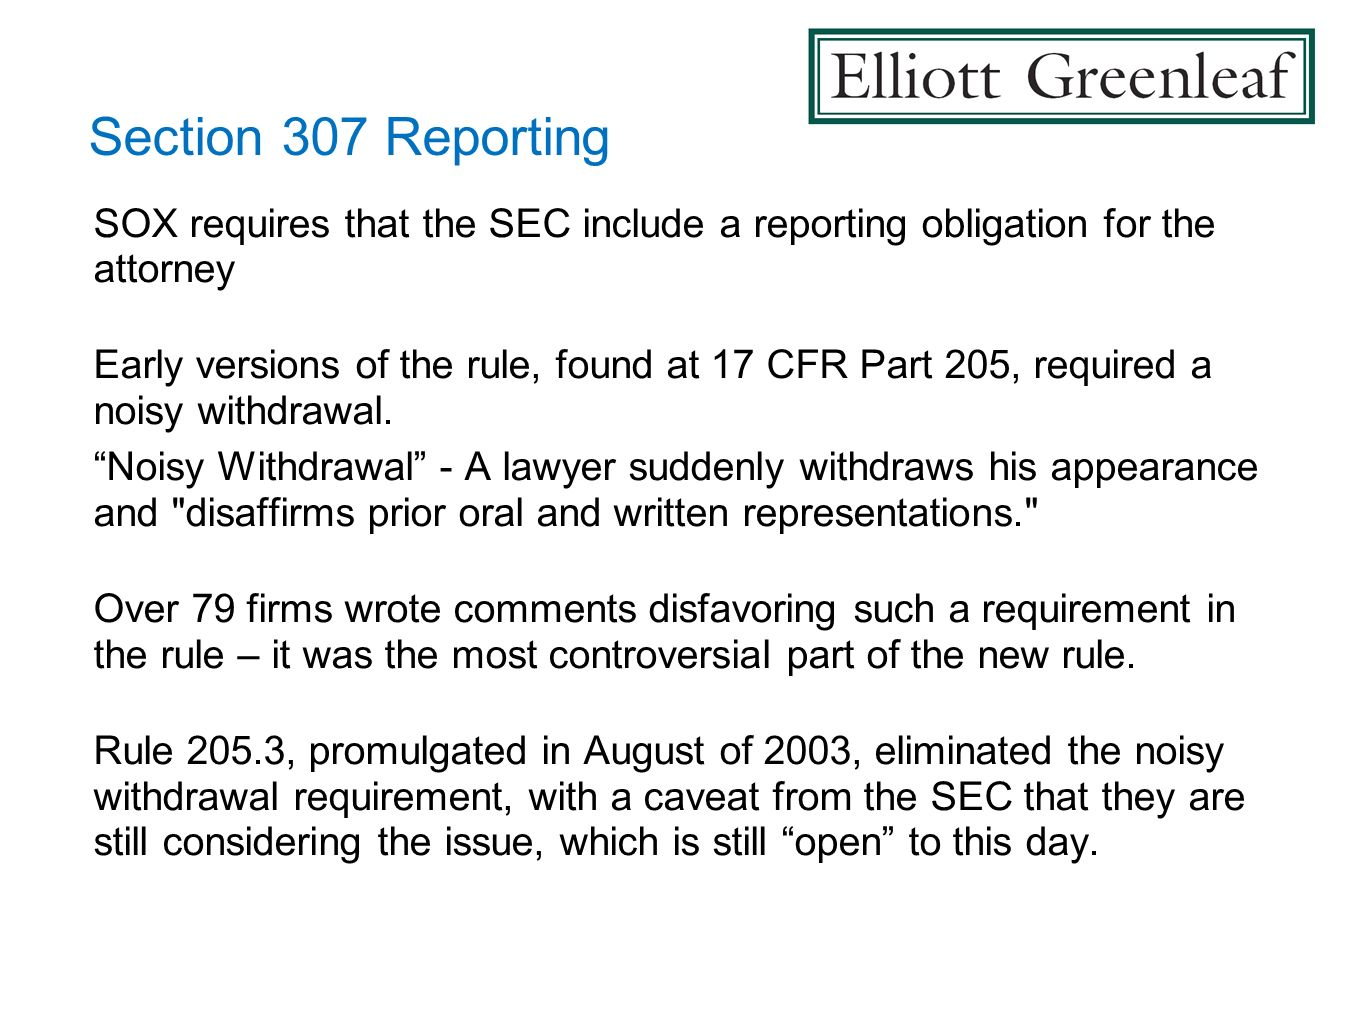 Section 307 Reporting SOX requires that the SEC include a reporting obligation for the attorney.